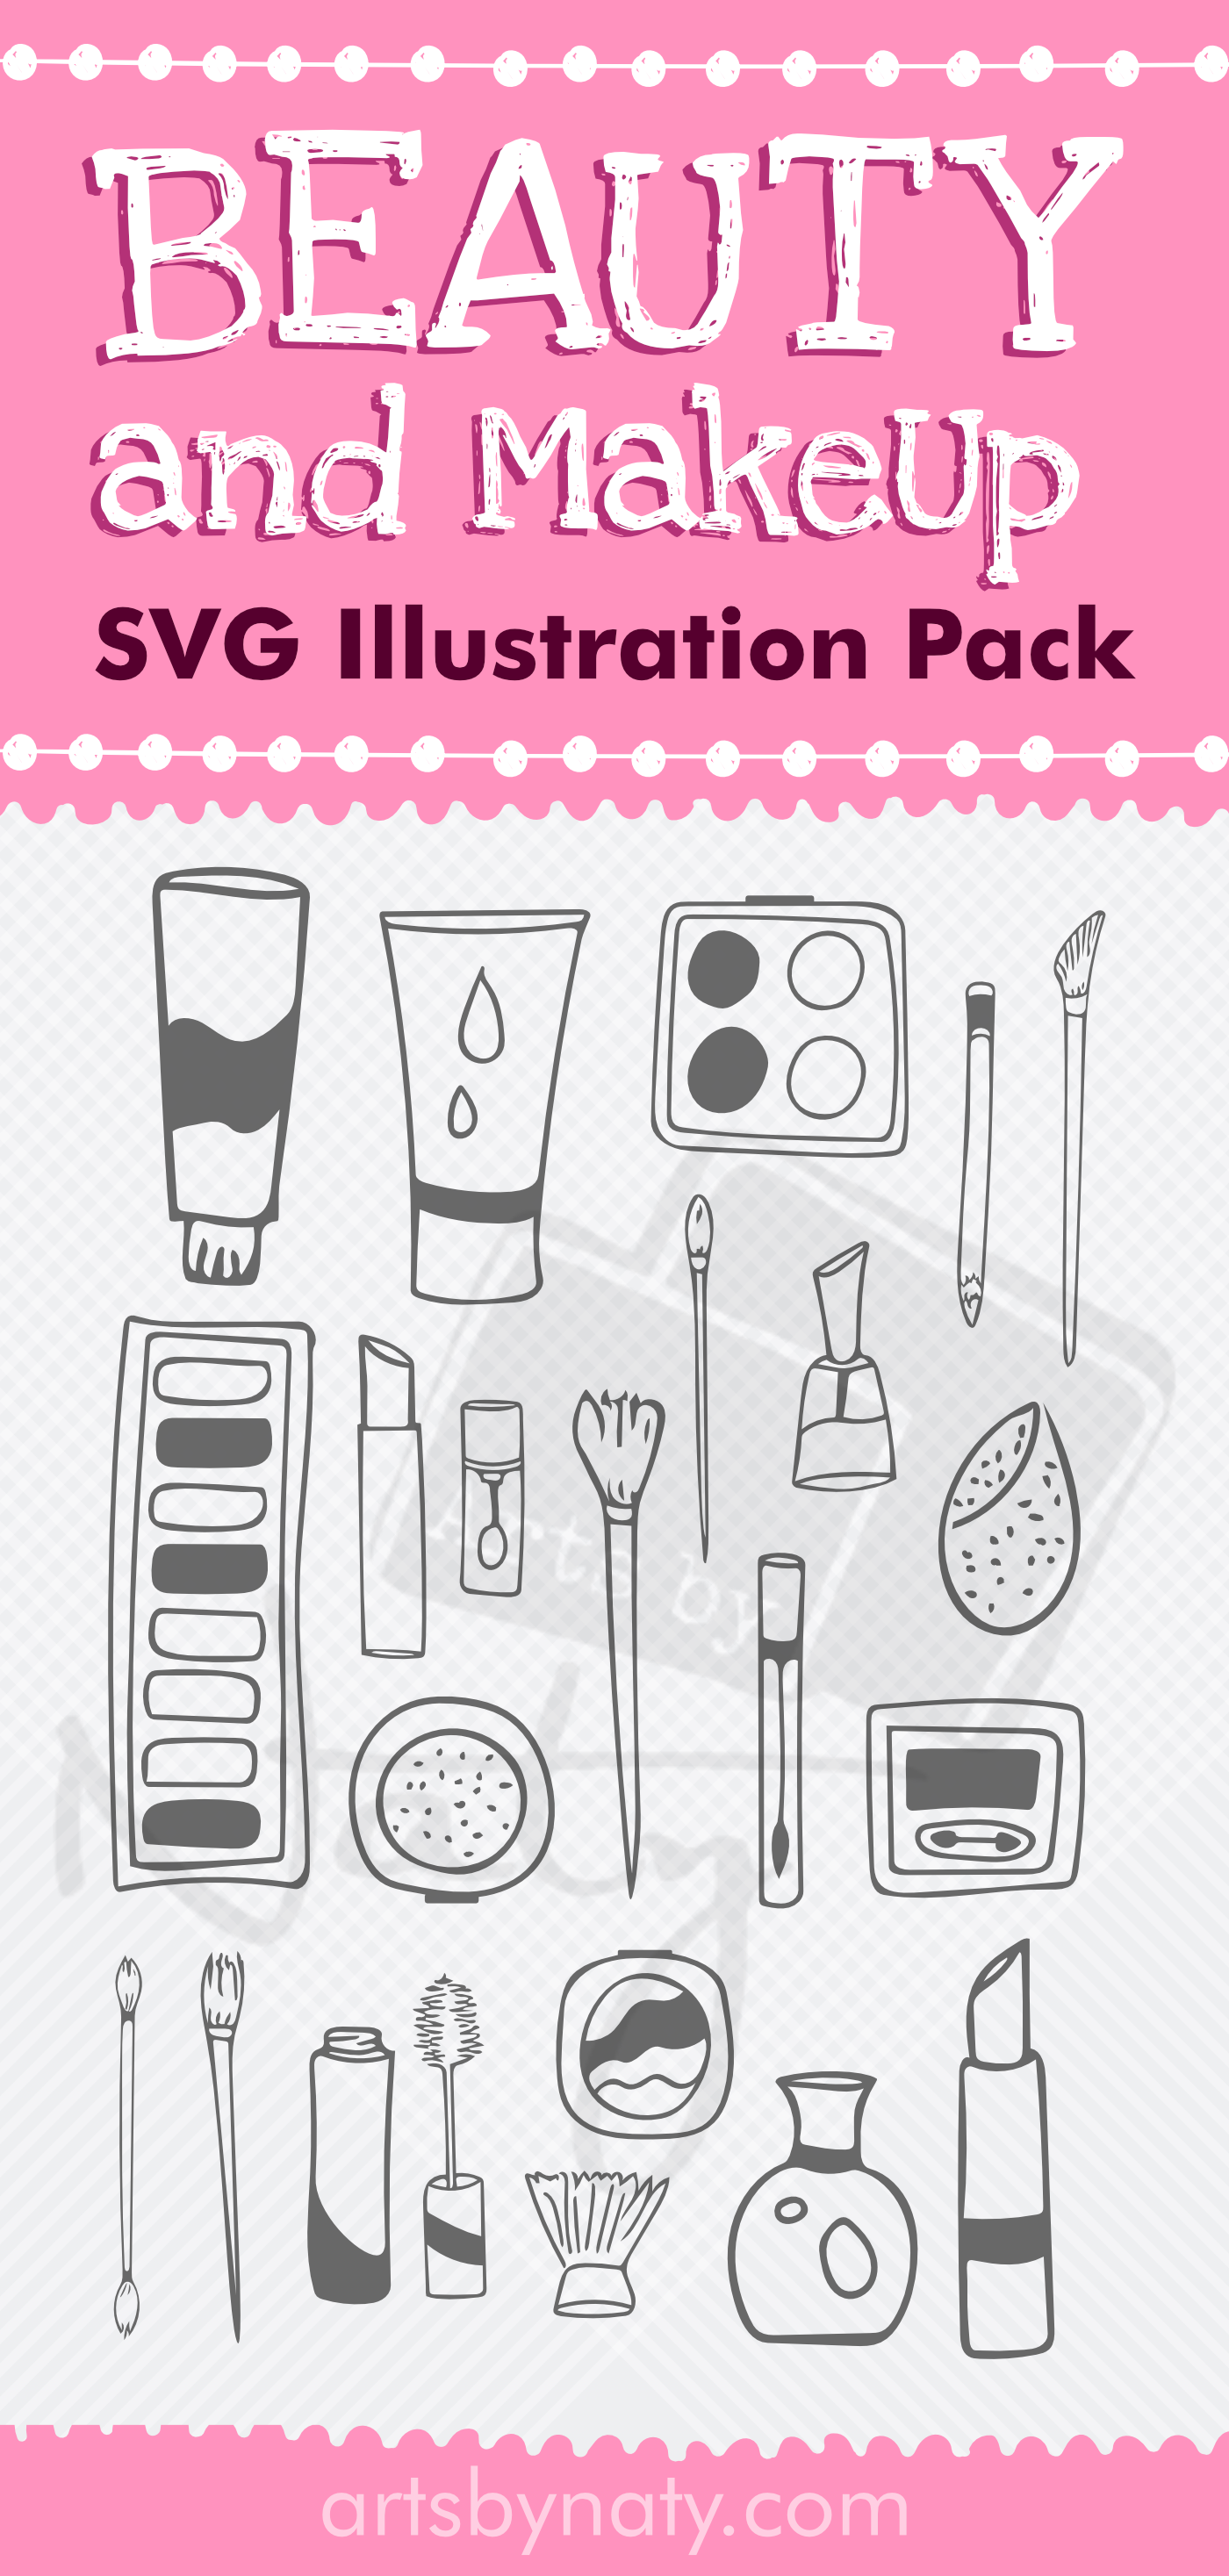 Makeup Svg : makeup, Beauty, MakeUp, Illustration, Elements., Hands,, Store, Branding,, Makeup